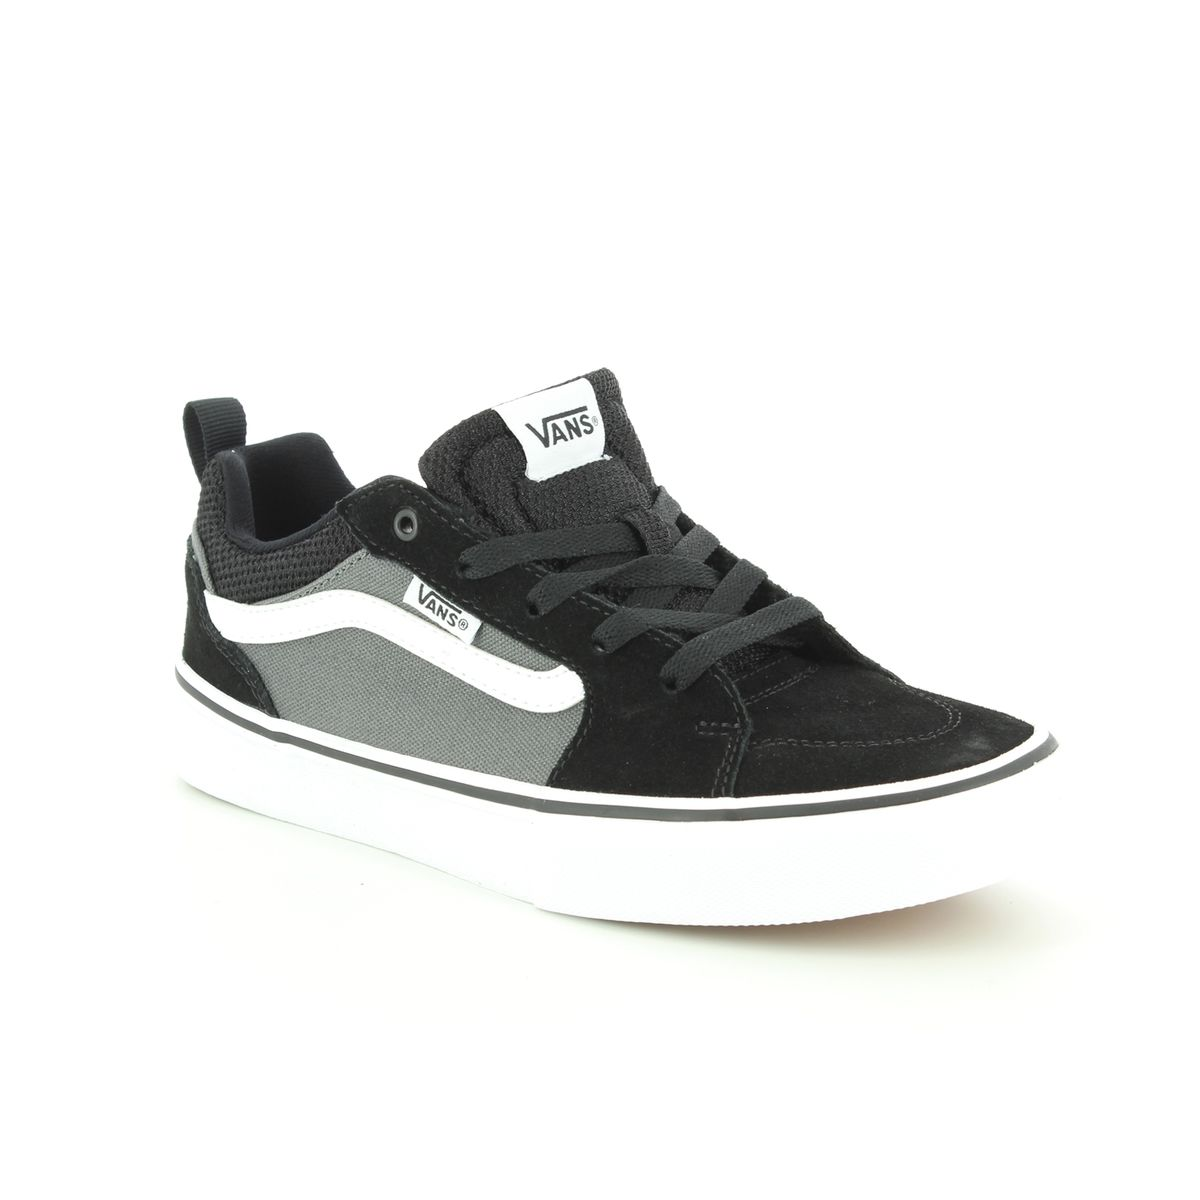 5b2f2e0d7b Vans Trainers - Black grey - VA3MVPUG7 35 FILMORE YOUTH